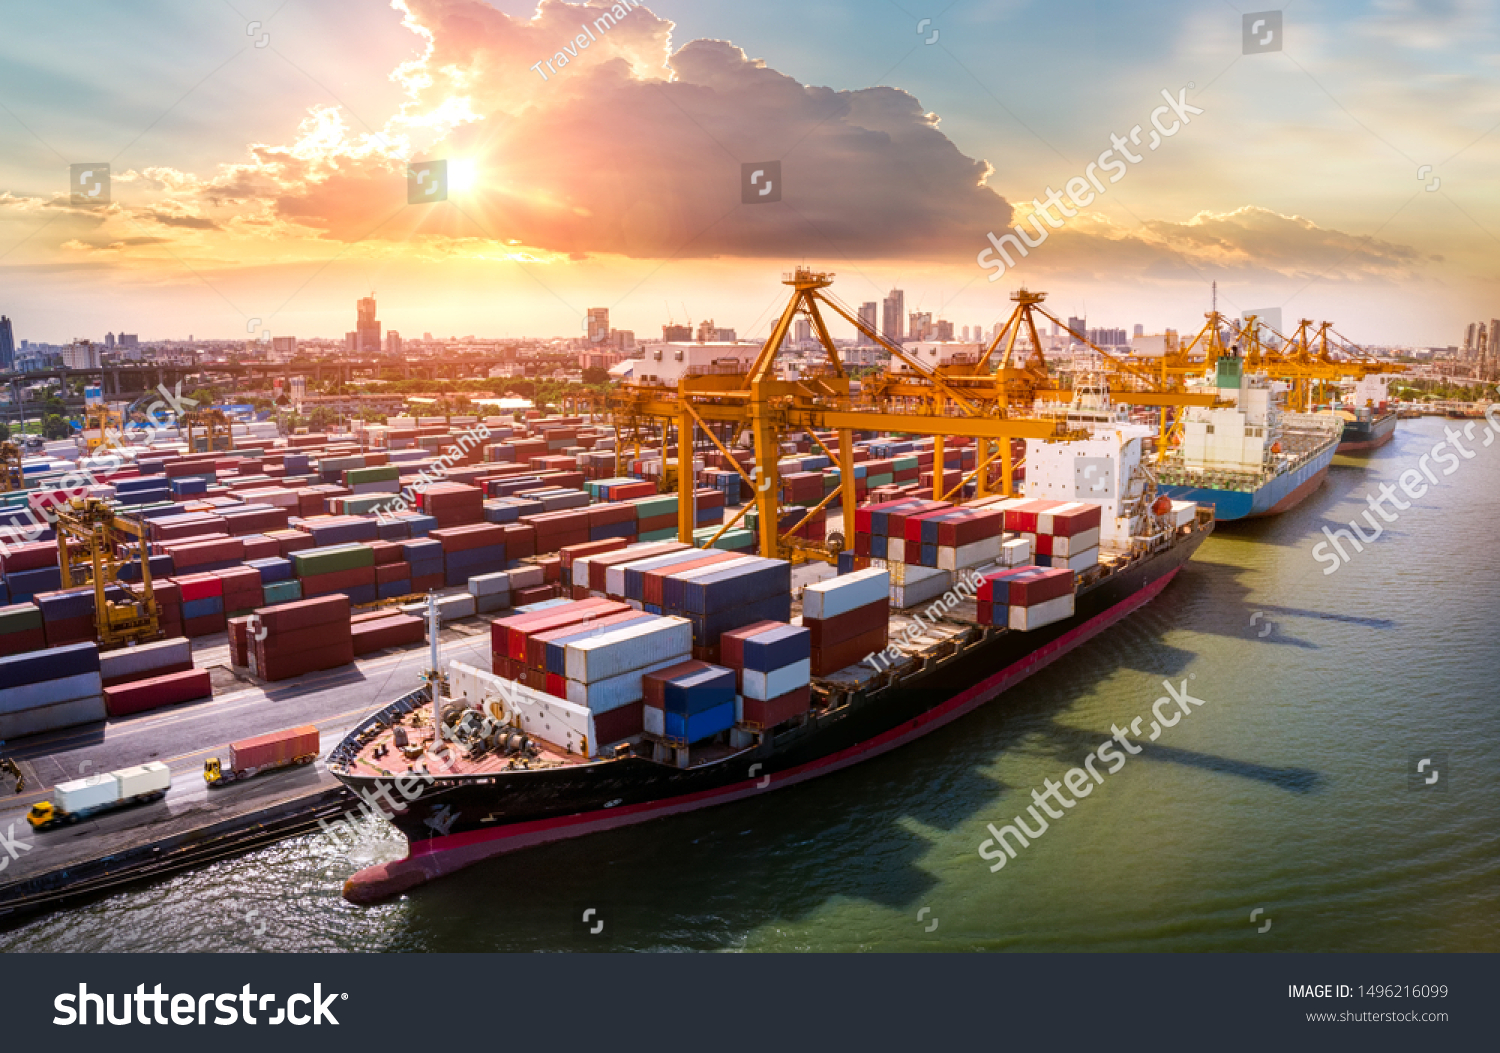 Logistics and transportation of Container Cargo ship and Cargo plane with working crane bridge in shipyard at sunrise, logistic import export and transport industry background #1496216099